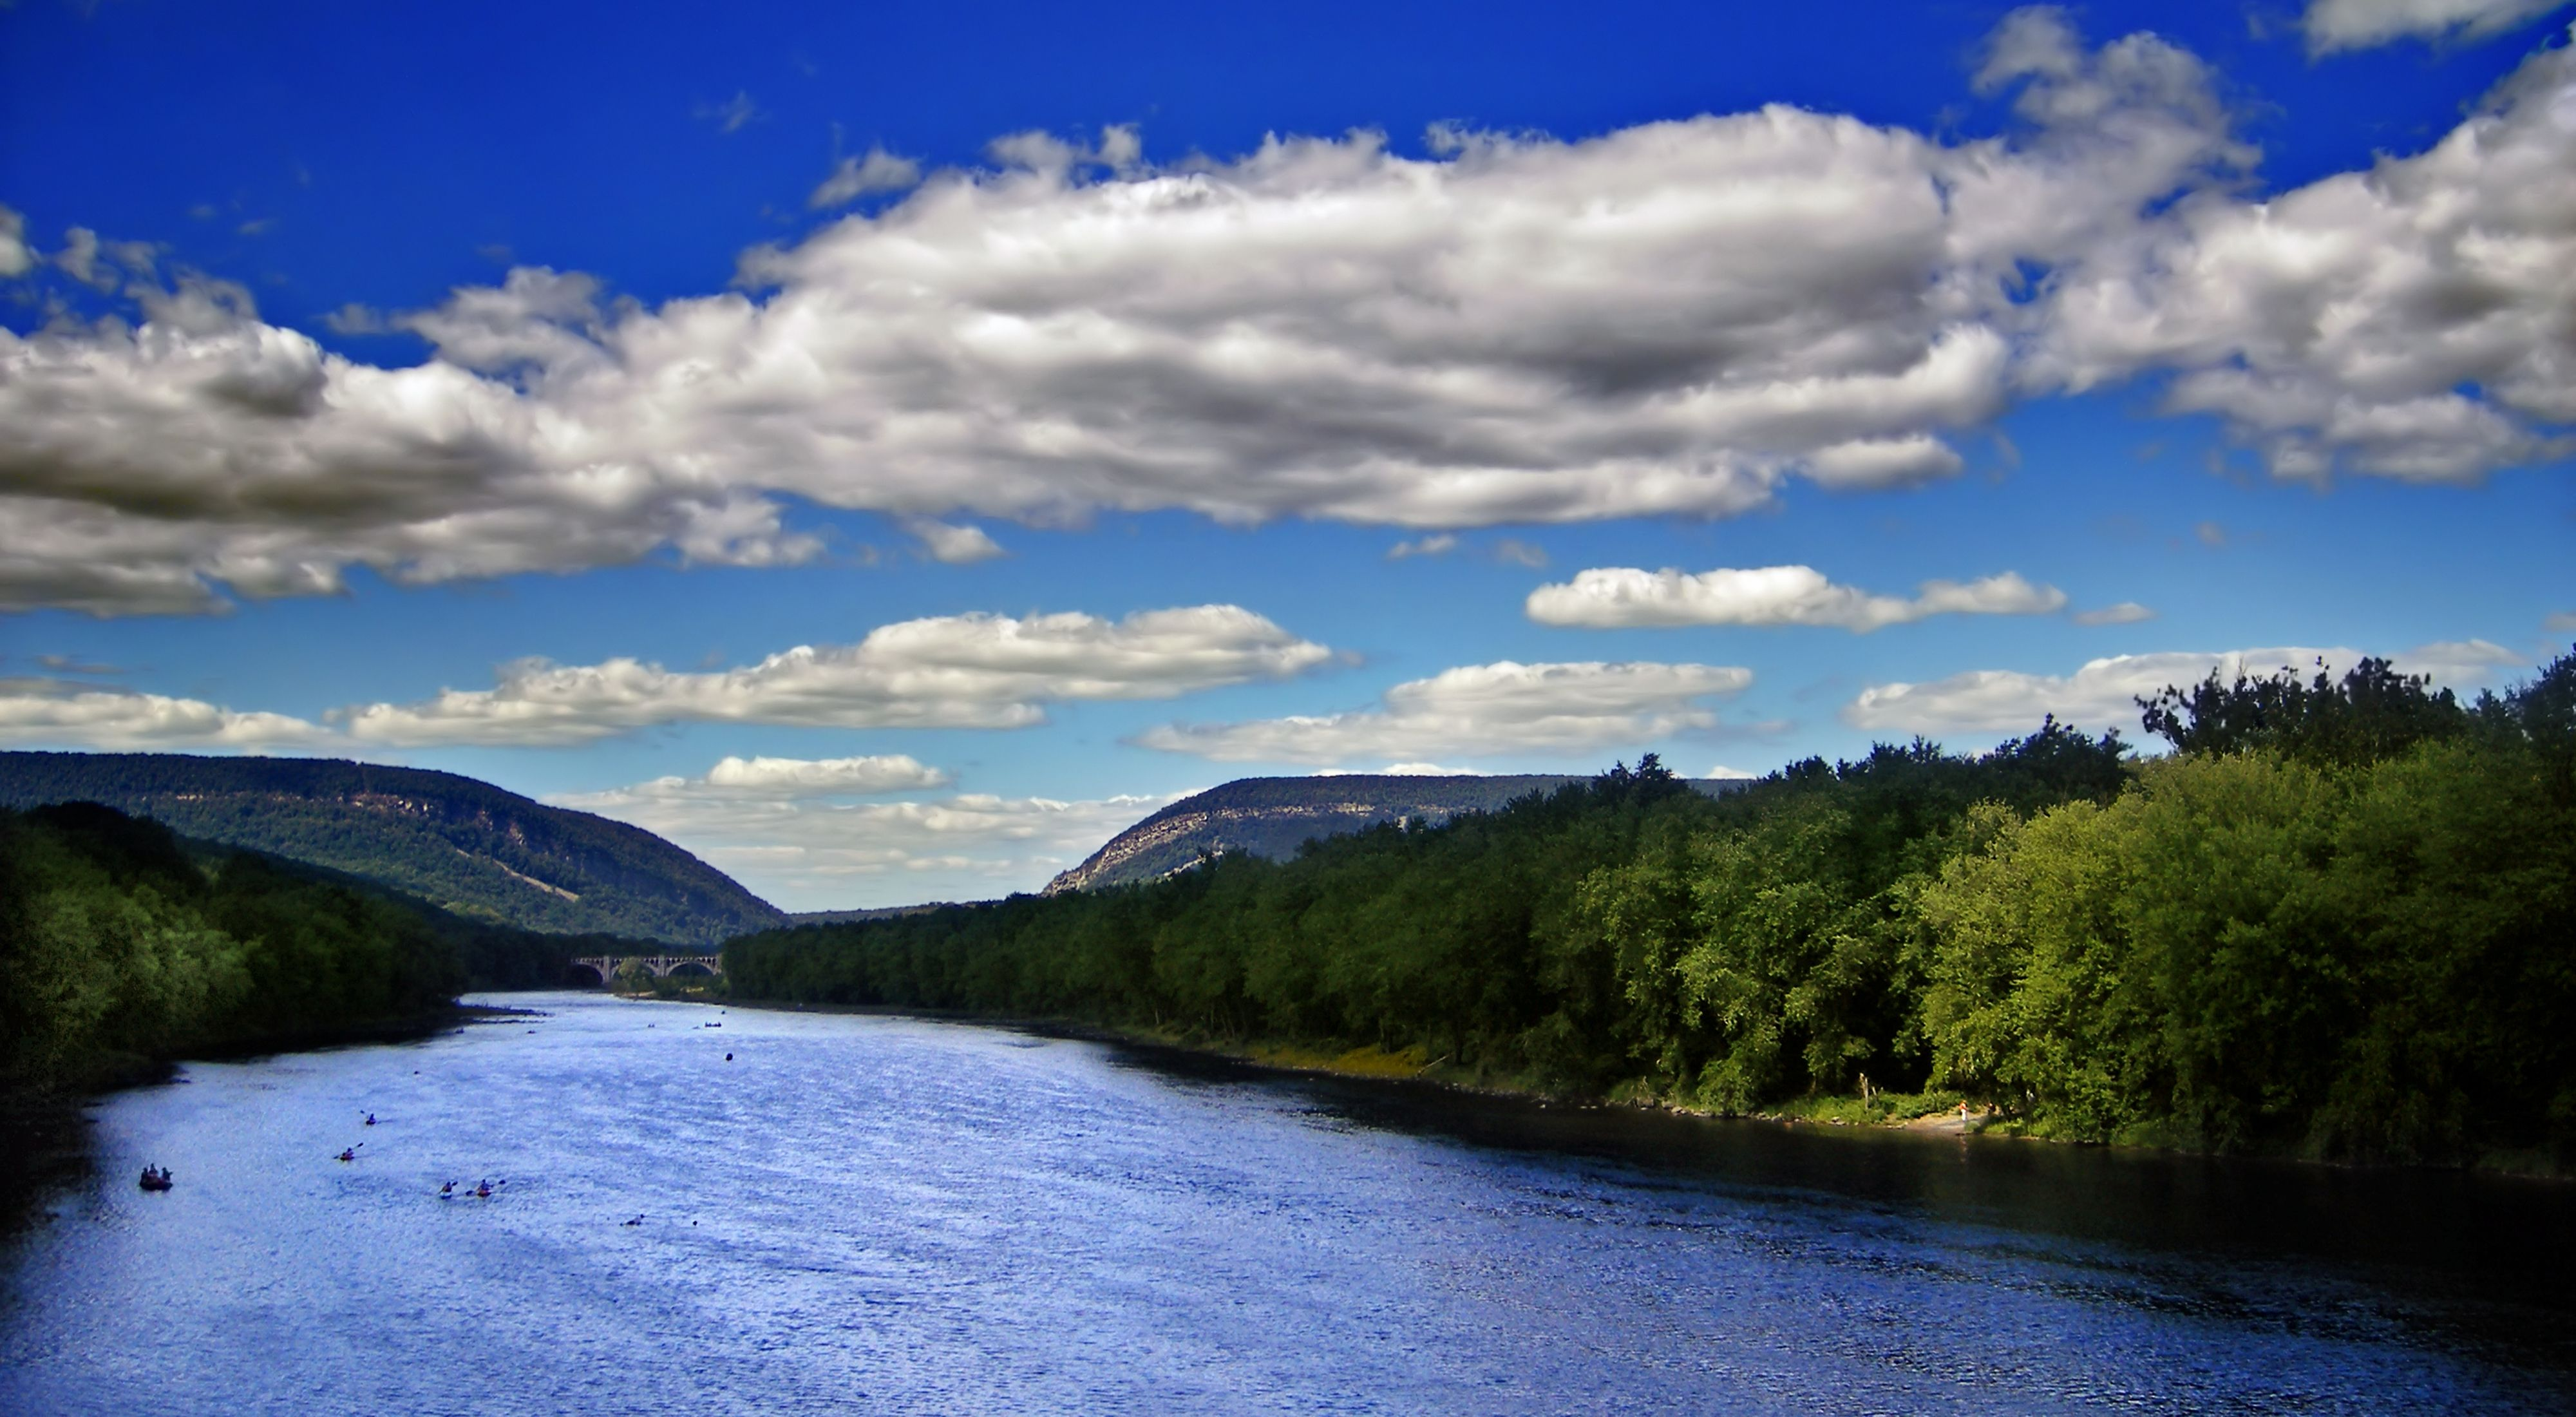 A river flows through abundant trees under a blue sky and puffy clouds.